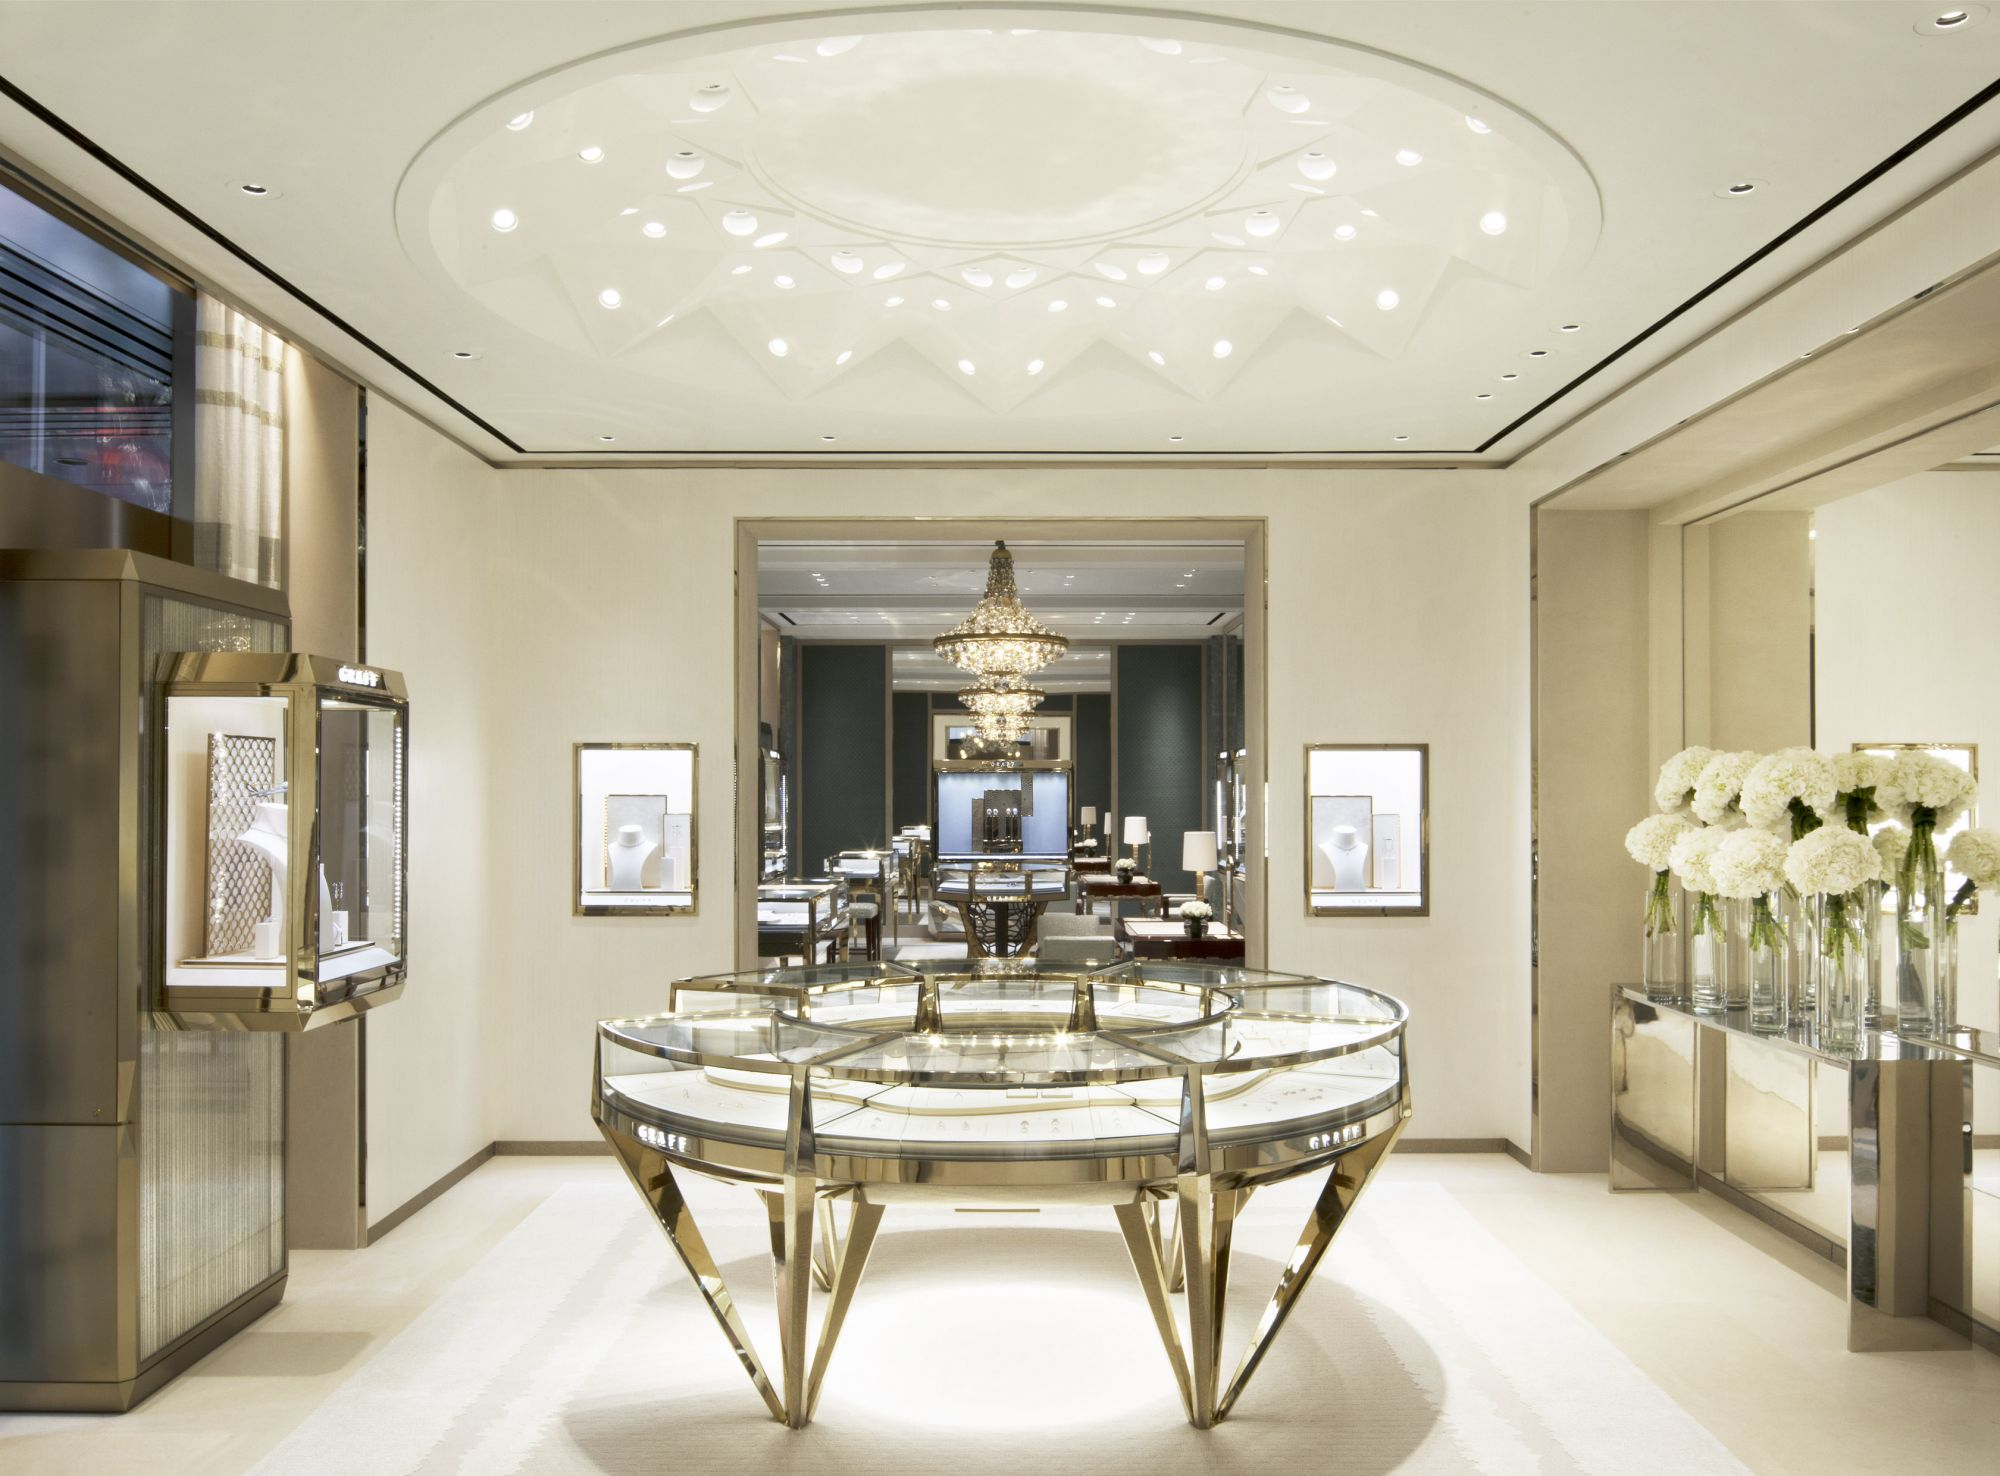 Graff Dazzles With Its New Flagship